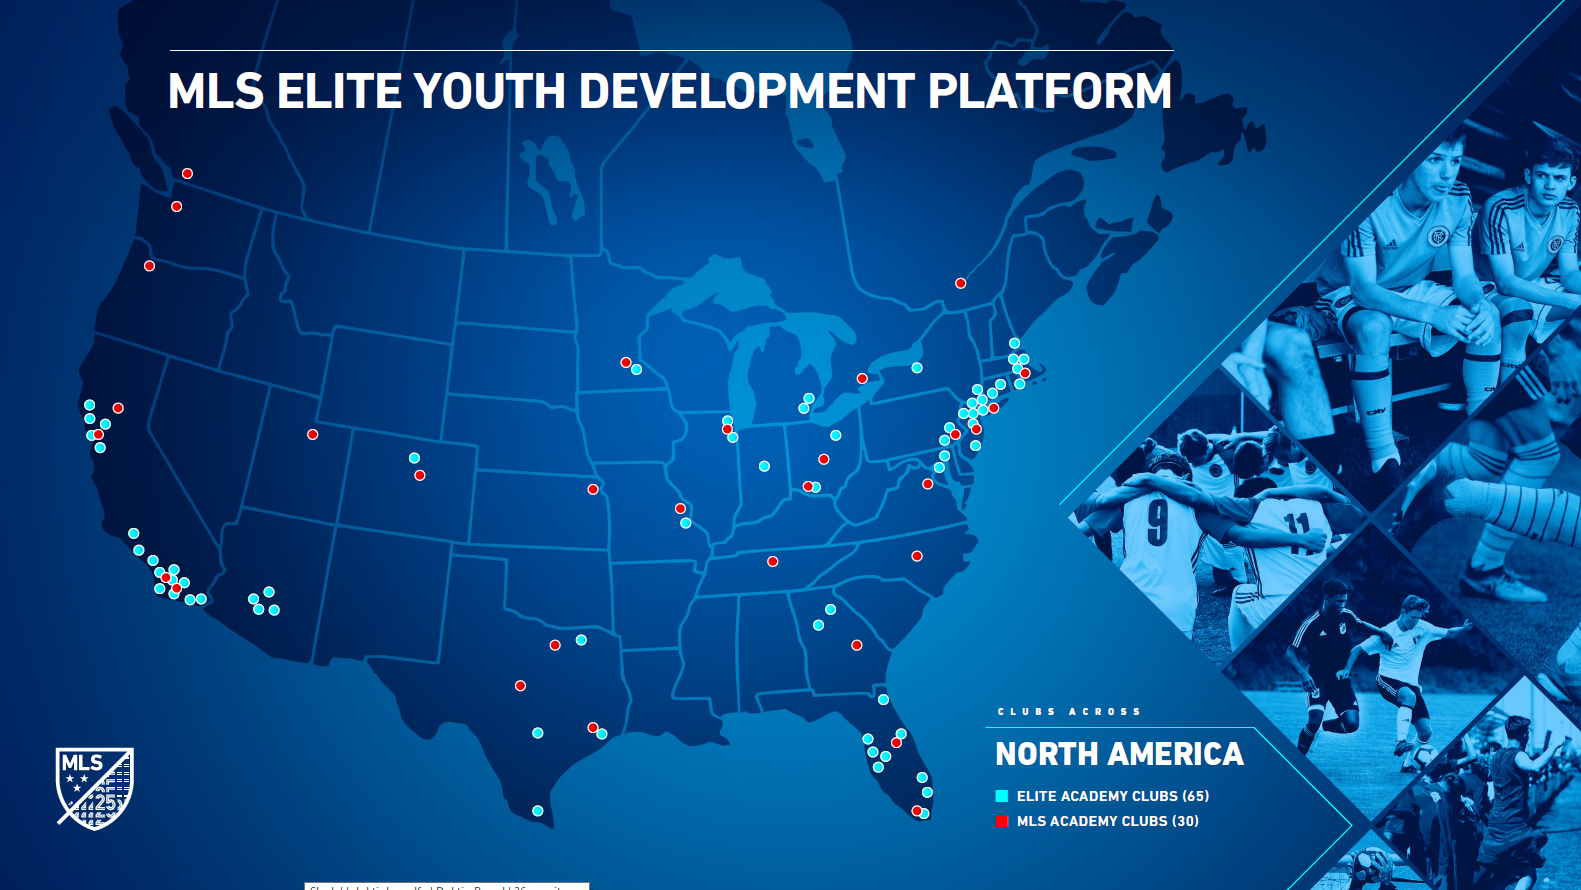 CUP Named Founding Member of New MLS Youth Development Platform